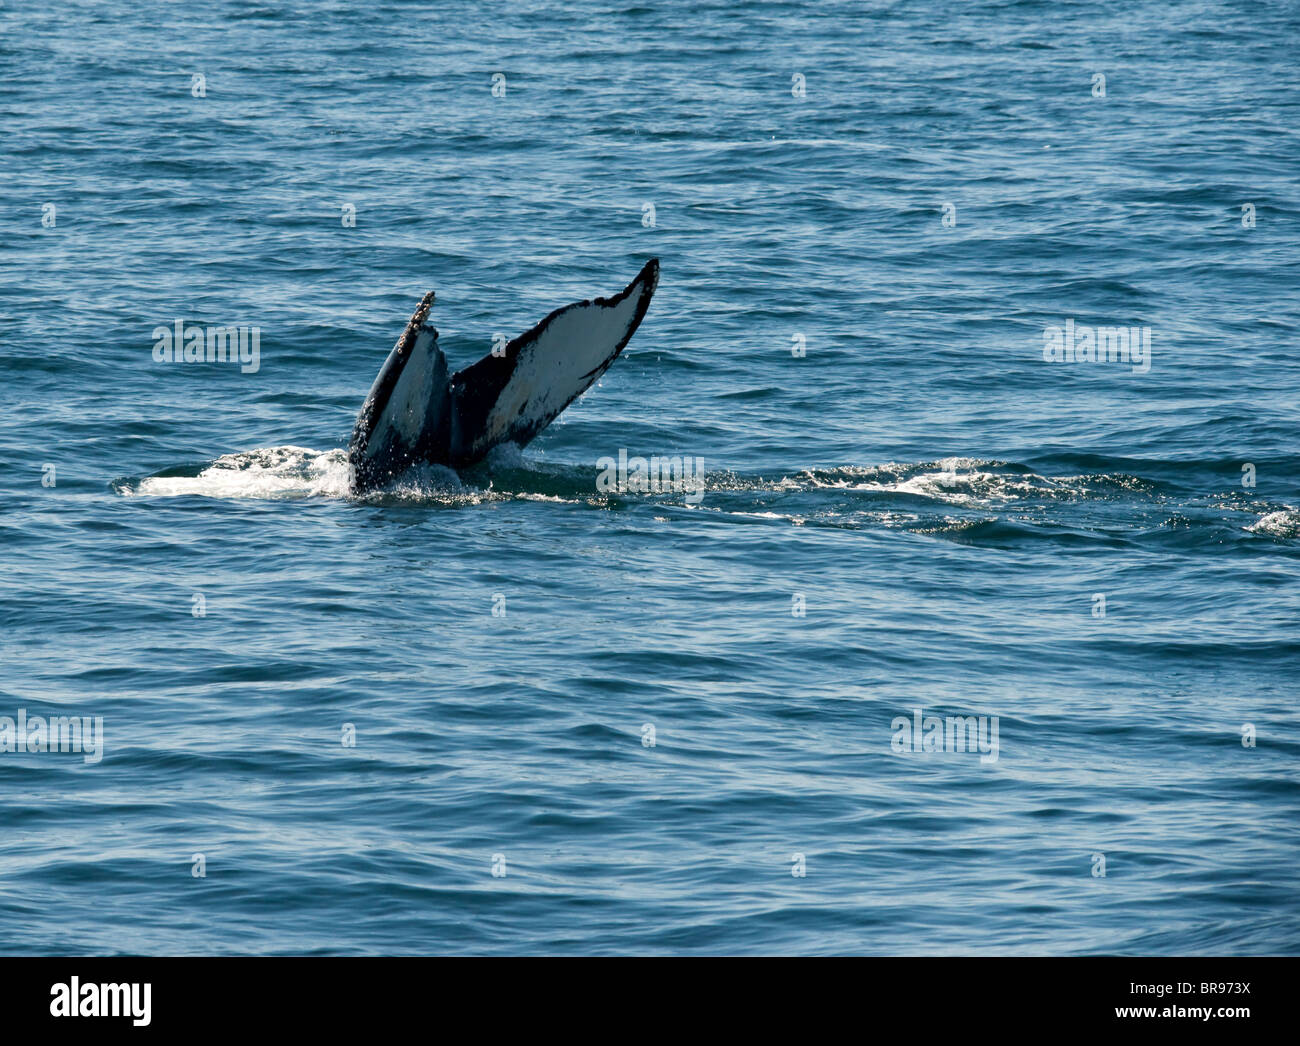 The tail of a Humpback Whale - Stock Image